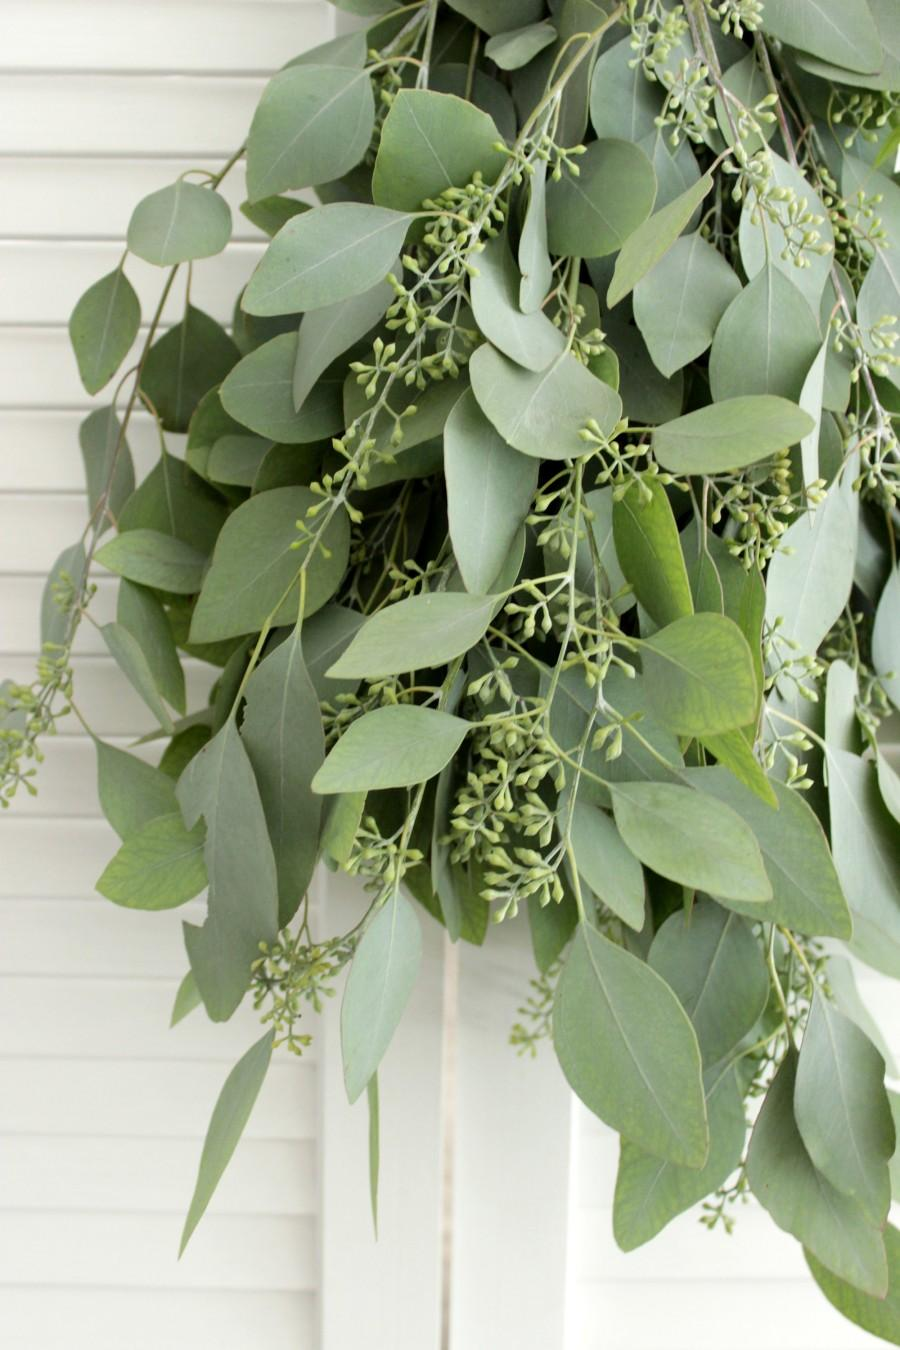 Wedding - Fresh Seeded Eucalyptus Bunch- 5-7 stem for wedding, home decor, party, gift to loved ones.